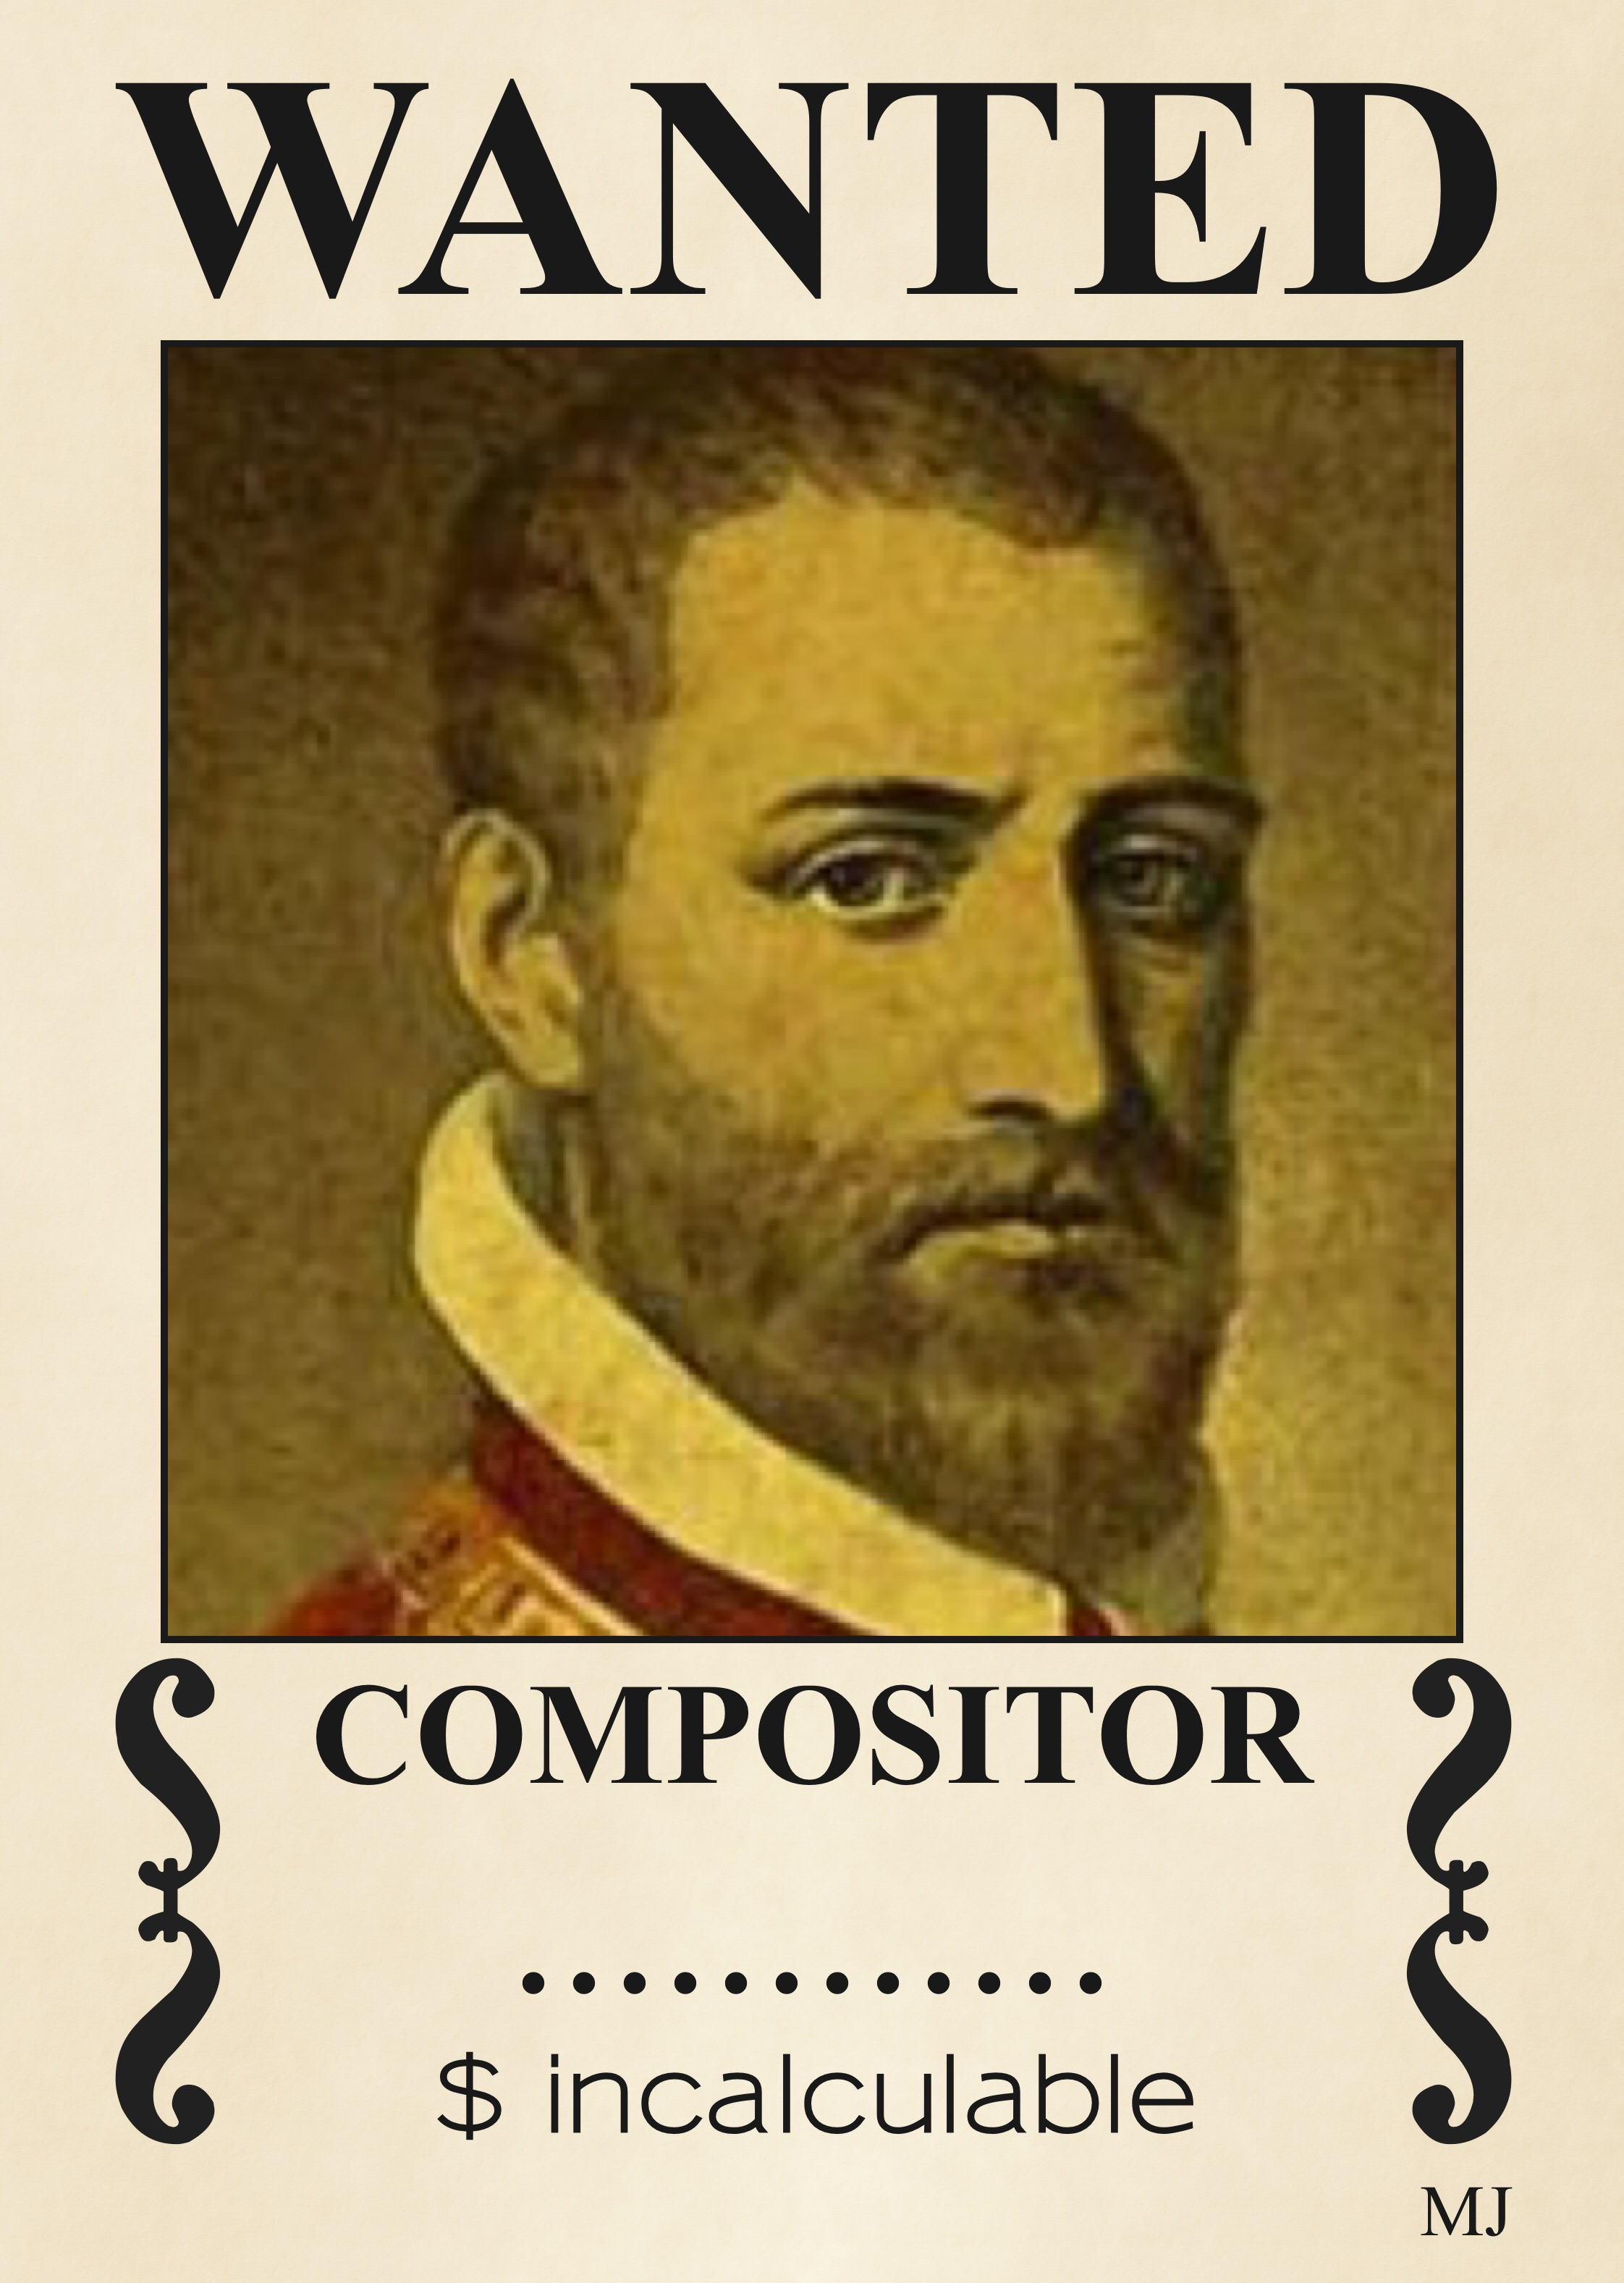 compositor04